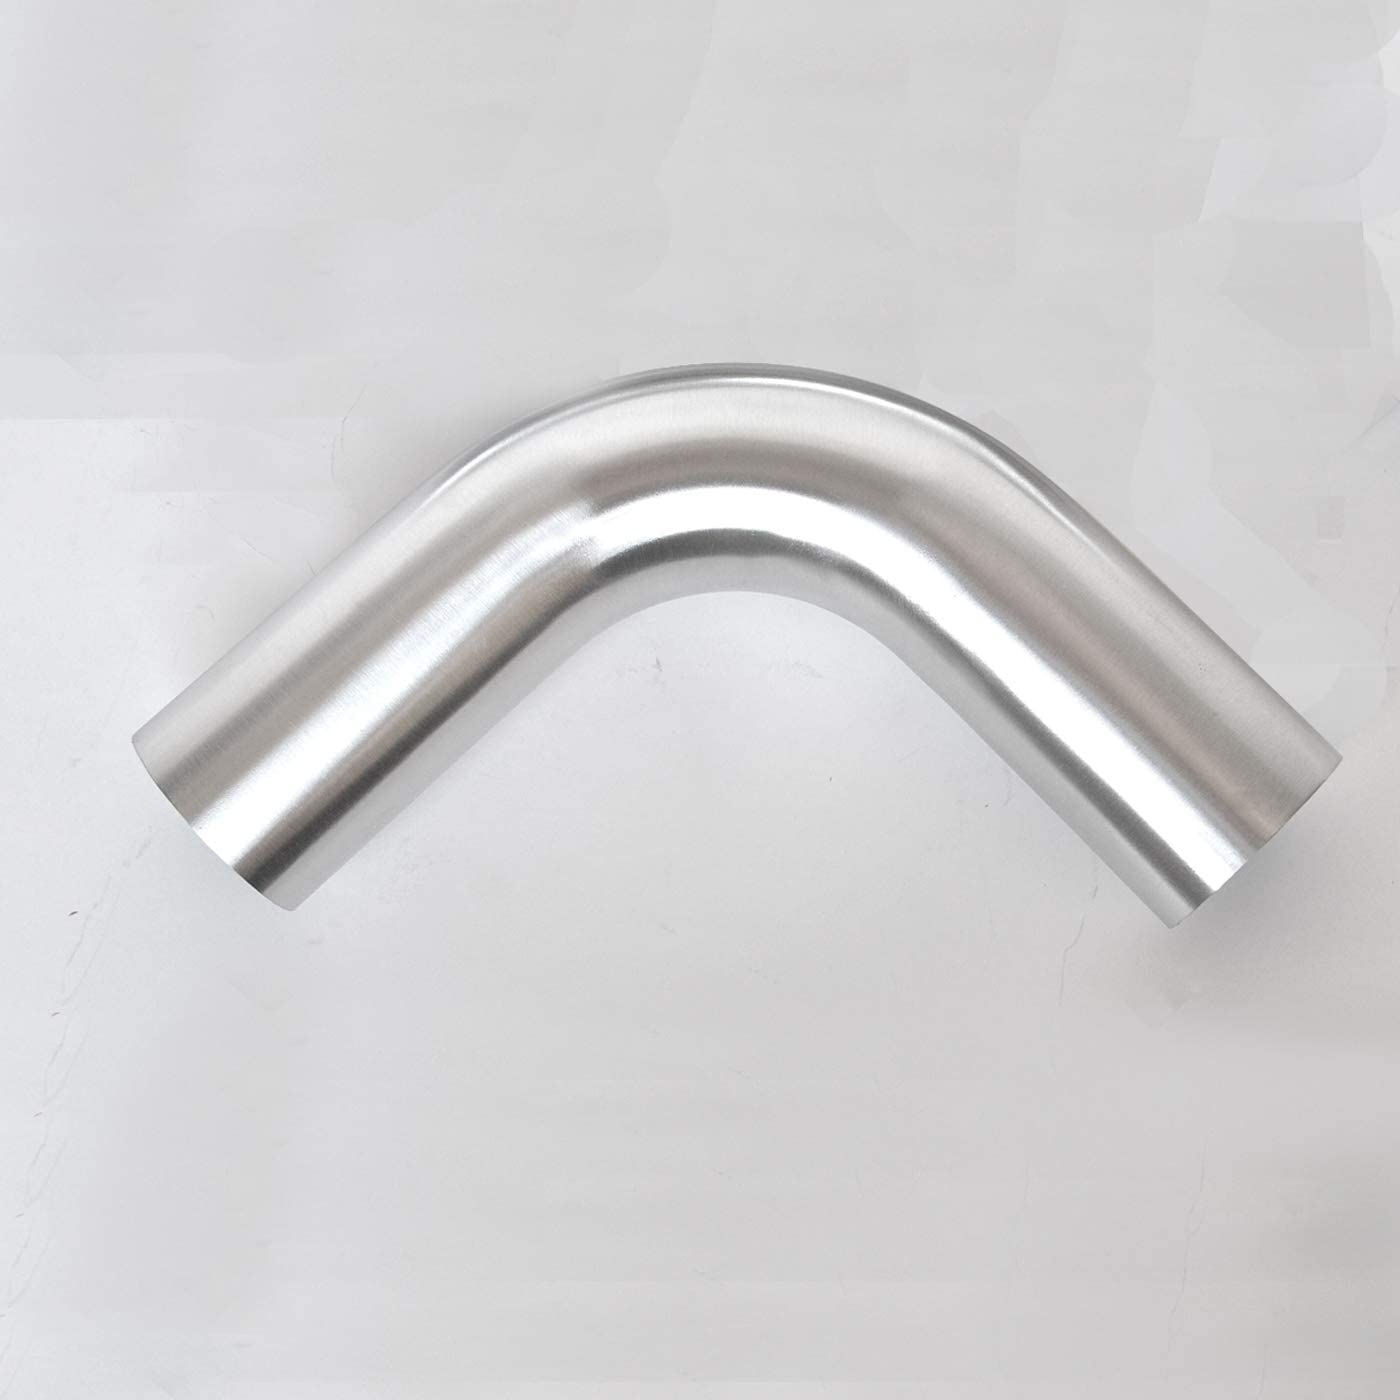 "OD 2.5""(63mm), Leg Length 4"" (100mm), 90 Degree Bend Elbow 2.5 Inch 6061 Aluminum Pipe Tube Intercooler Pipe High Class Brushed Treatment Tight Radius Air Intake Tube"